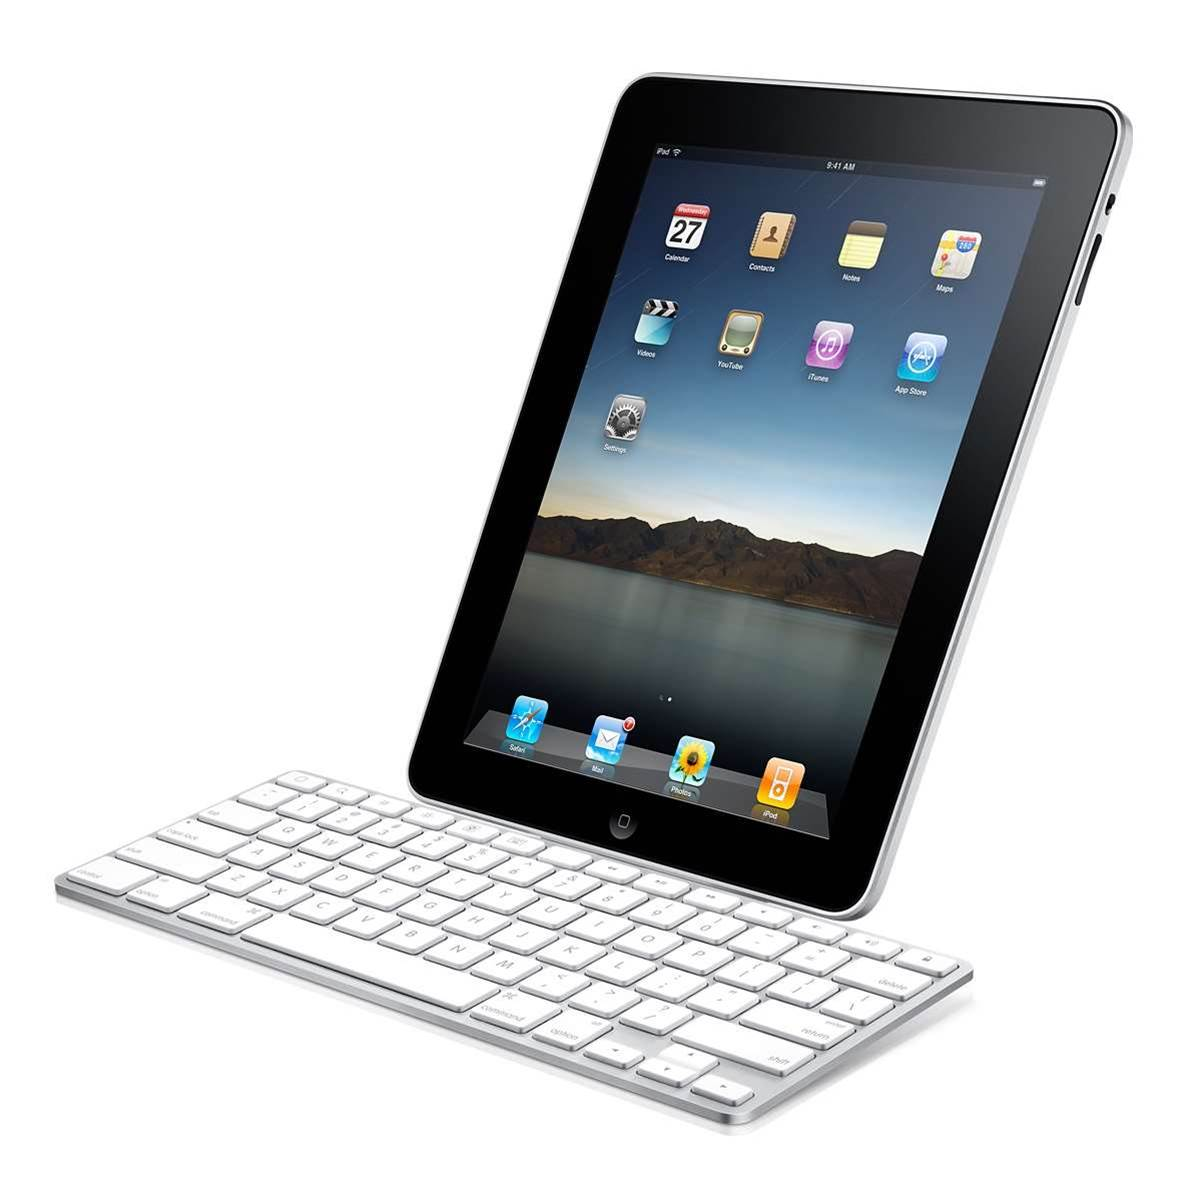 Apple's Australian online store takes iPad orders